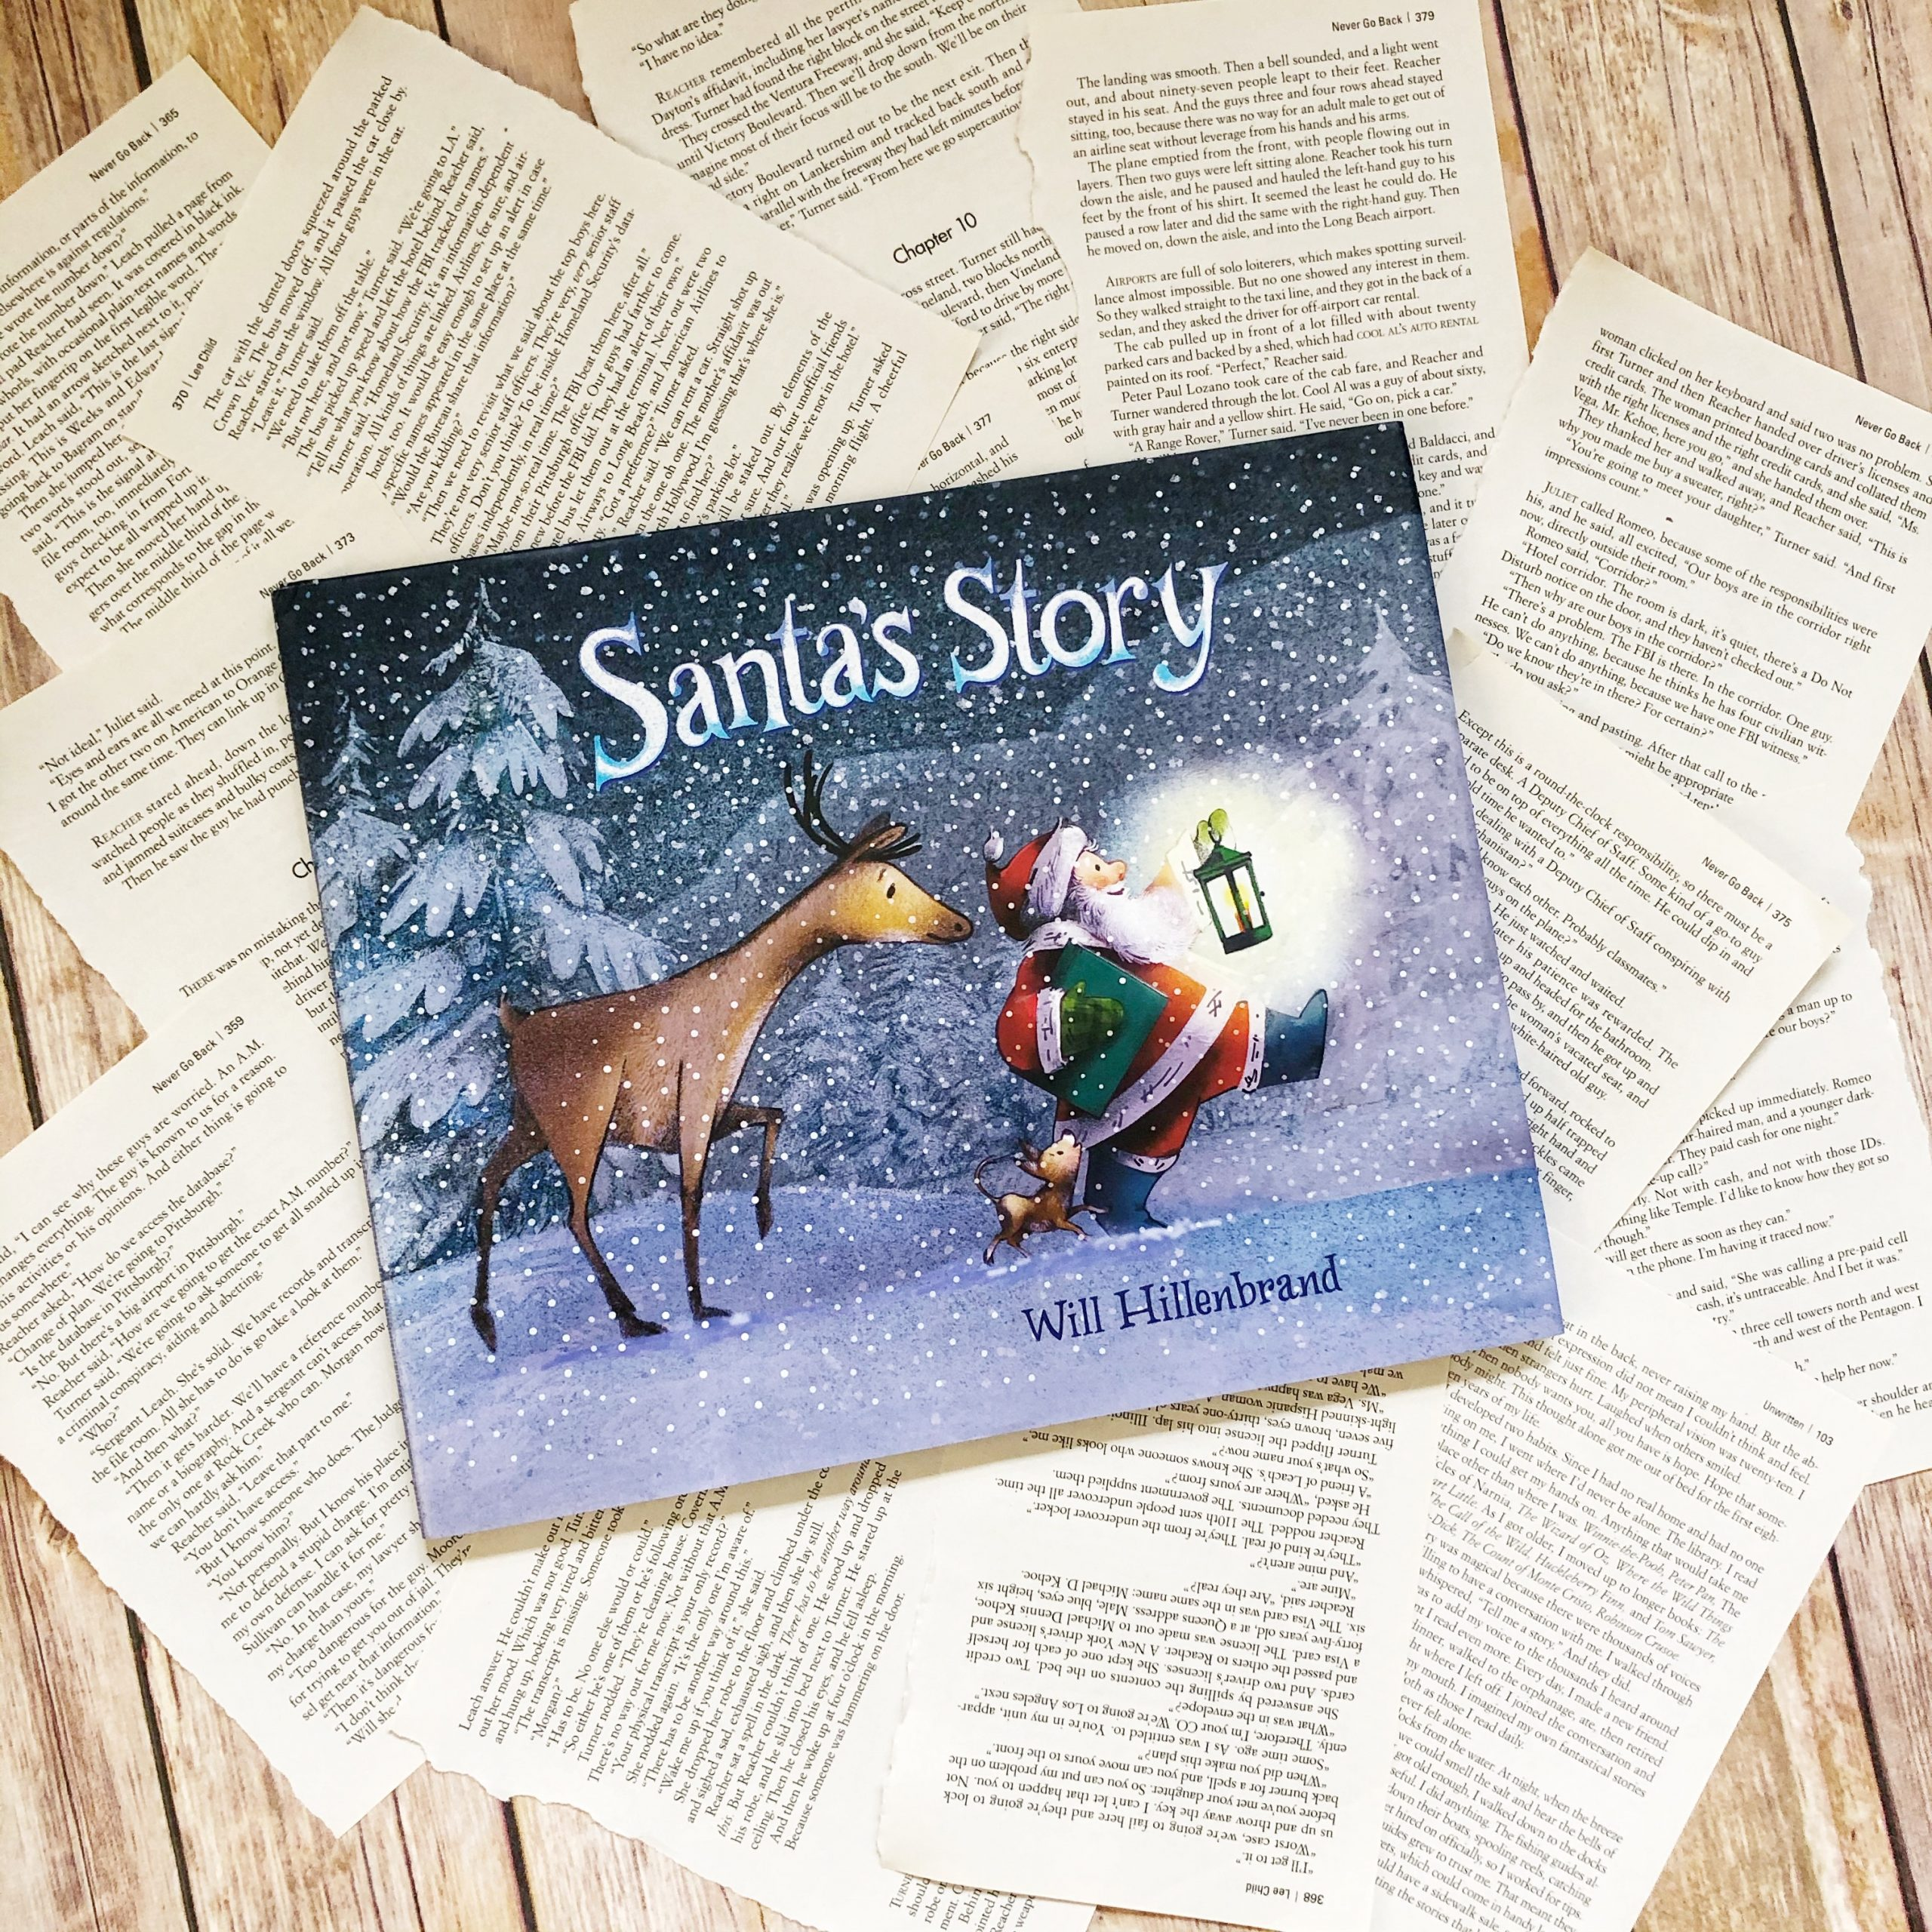 My Top 5 Christmas Stories and a Giveaway